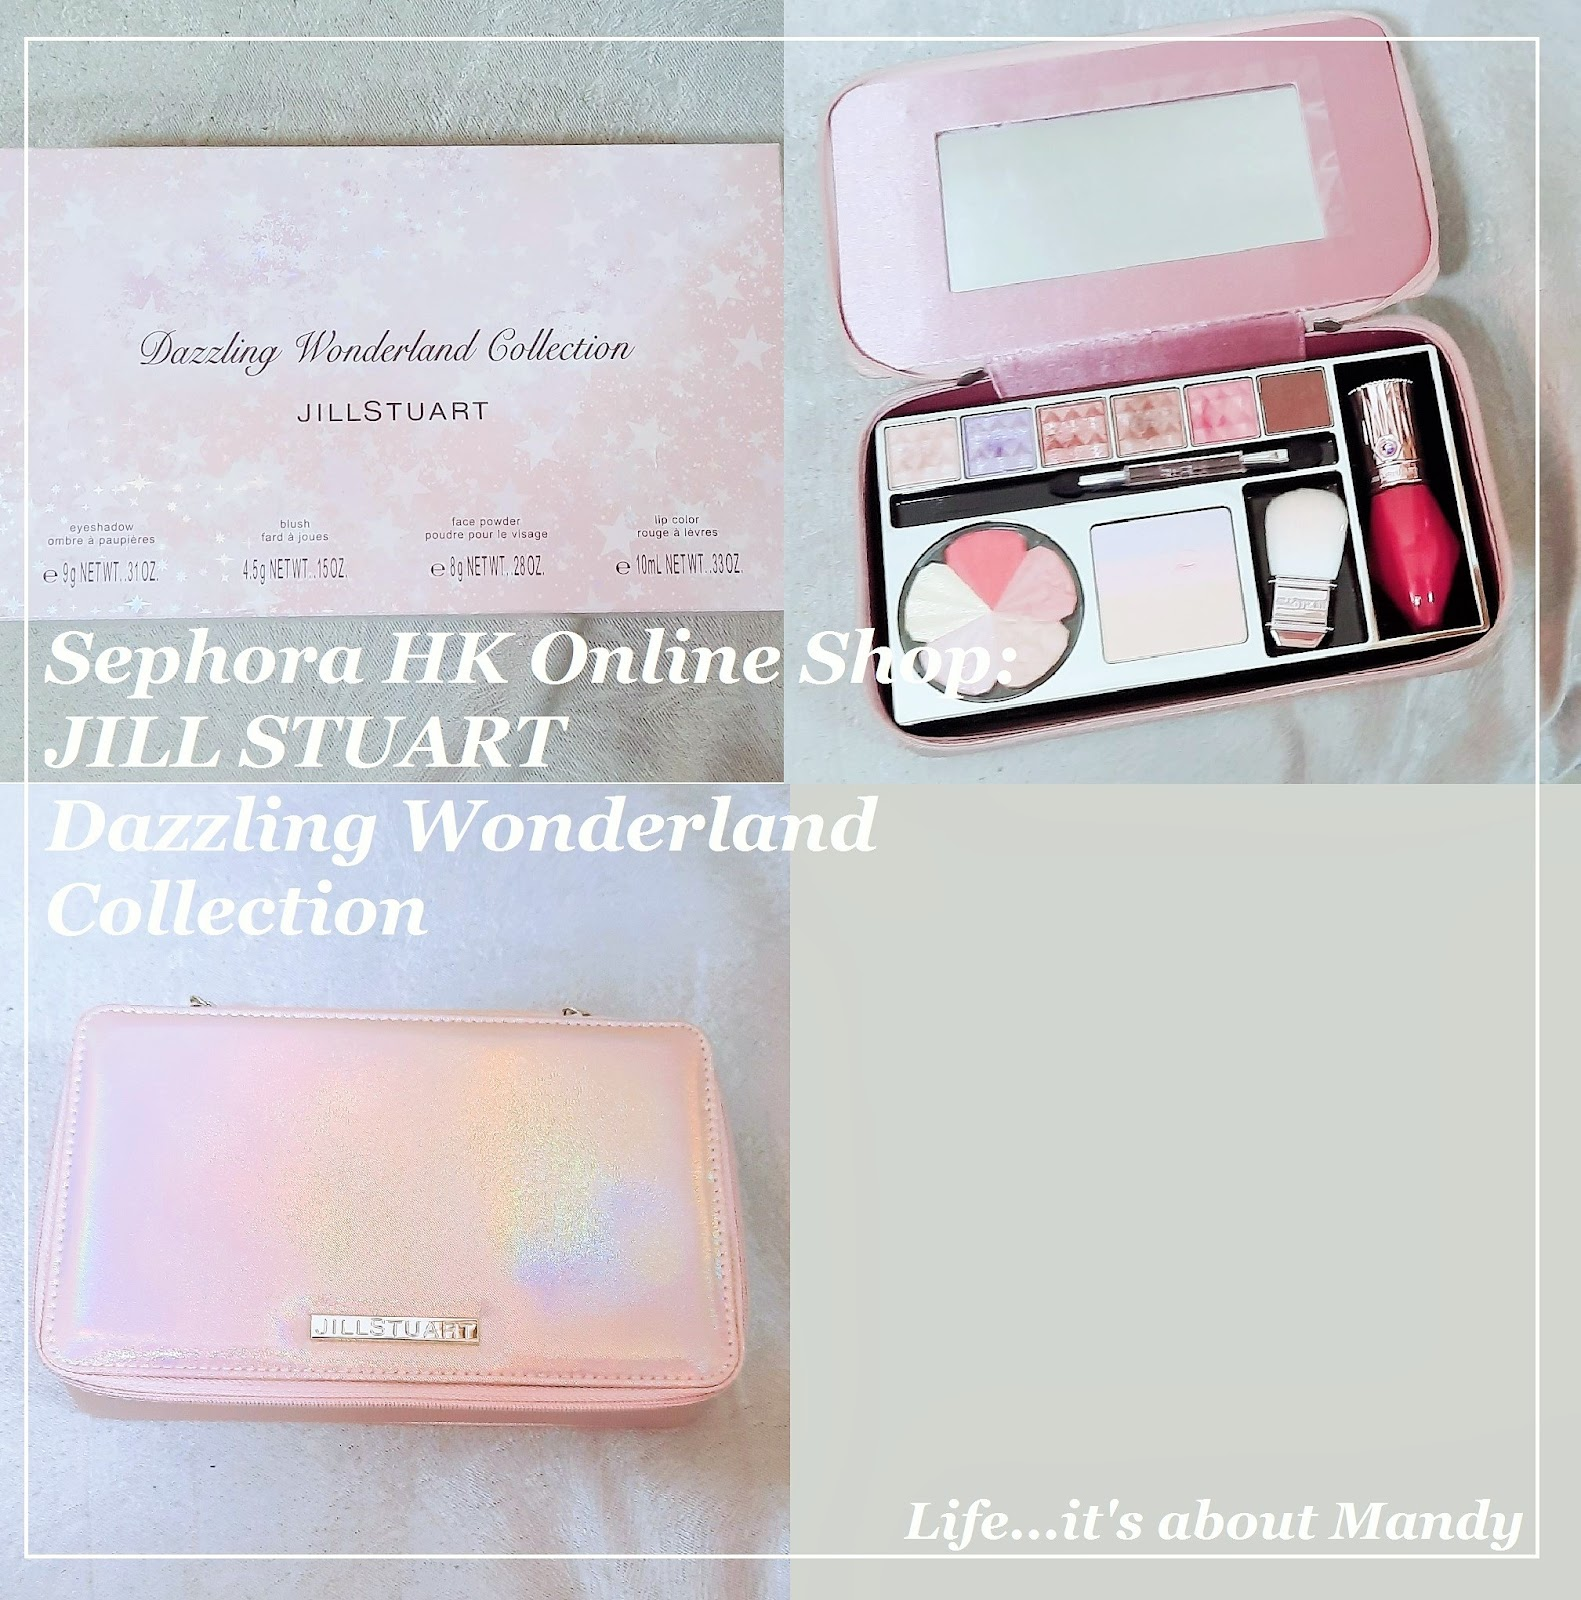 [Sephora HK Online Shop] JILL STUART Dazzling Wonderland Collection